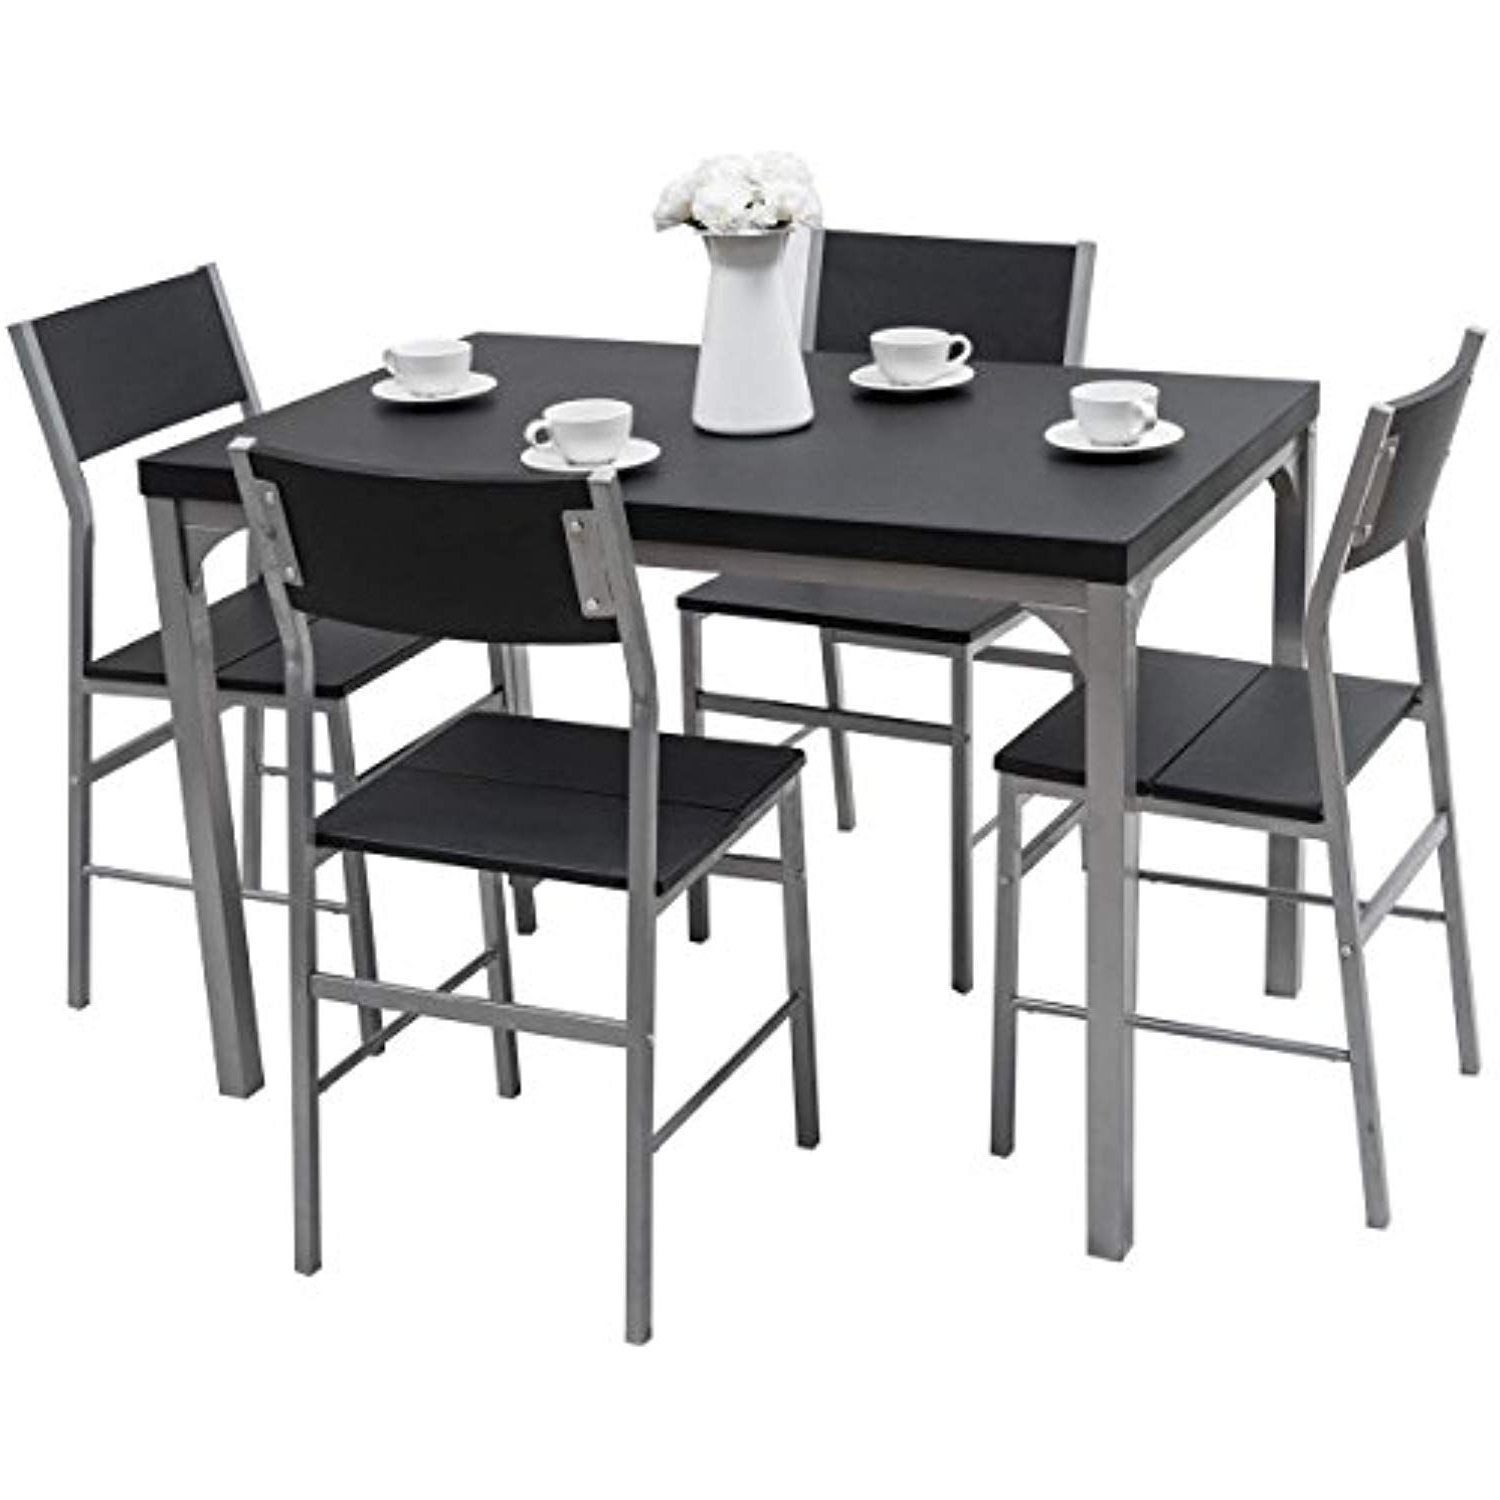 Tangkula Dining Table Set 5 Piece Home Kitchen Dining Room Tempered Regarding Well Known Ephraim 5 Piece Dining Sets (View 3 of 20)